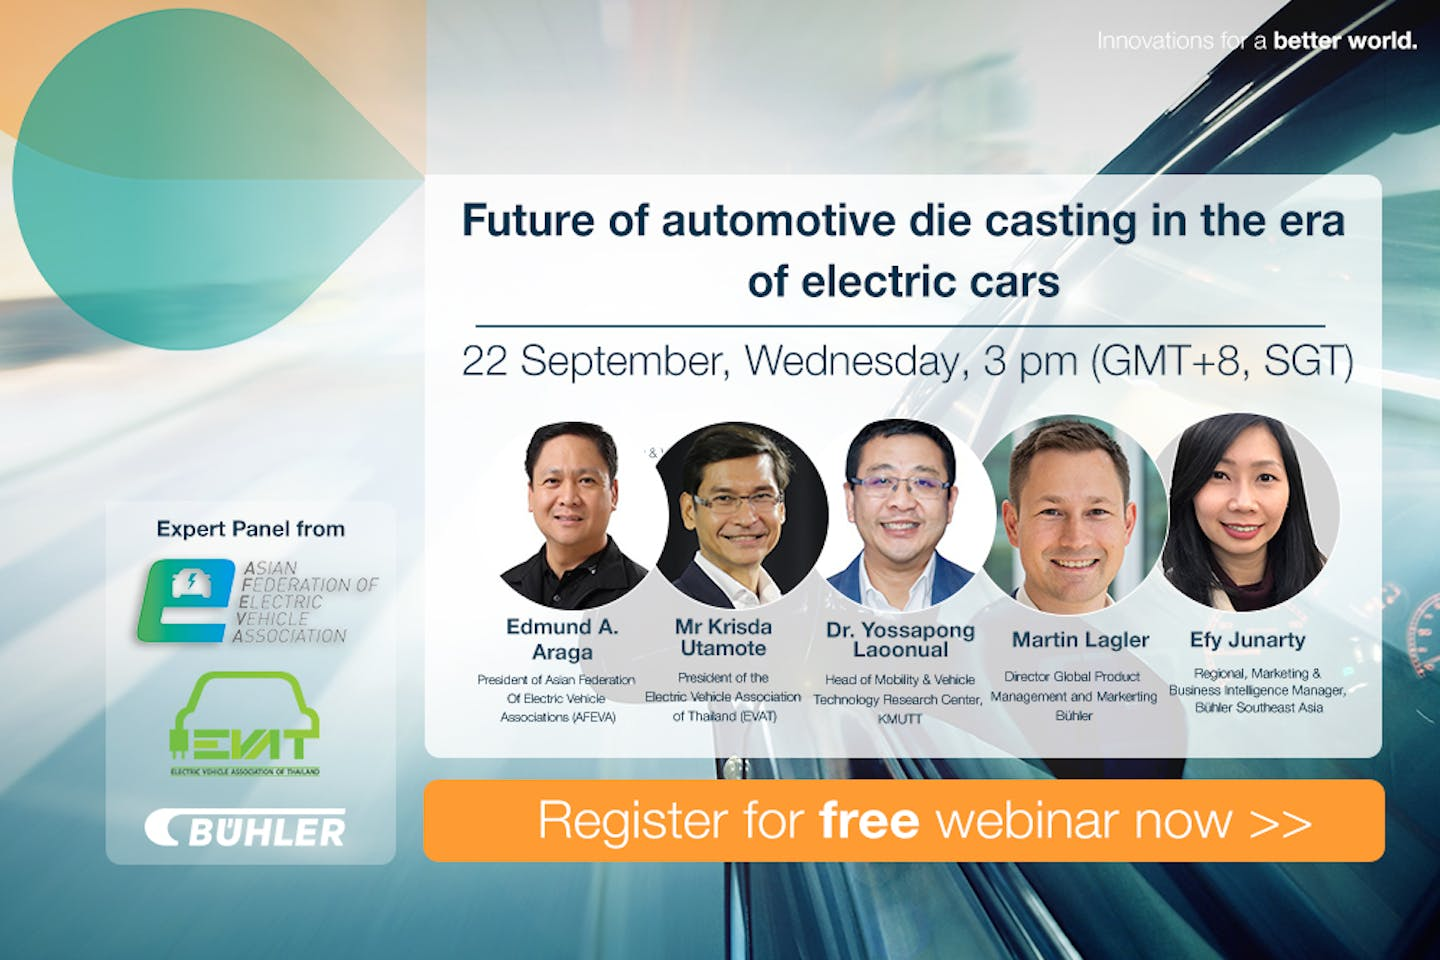 Reimagining mobility: Future of automotive die casting in the era of electric cars